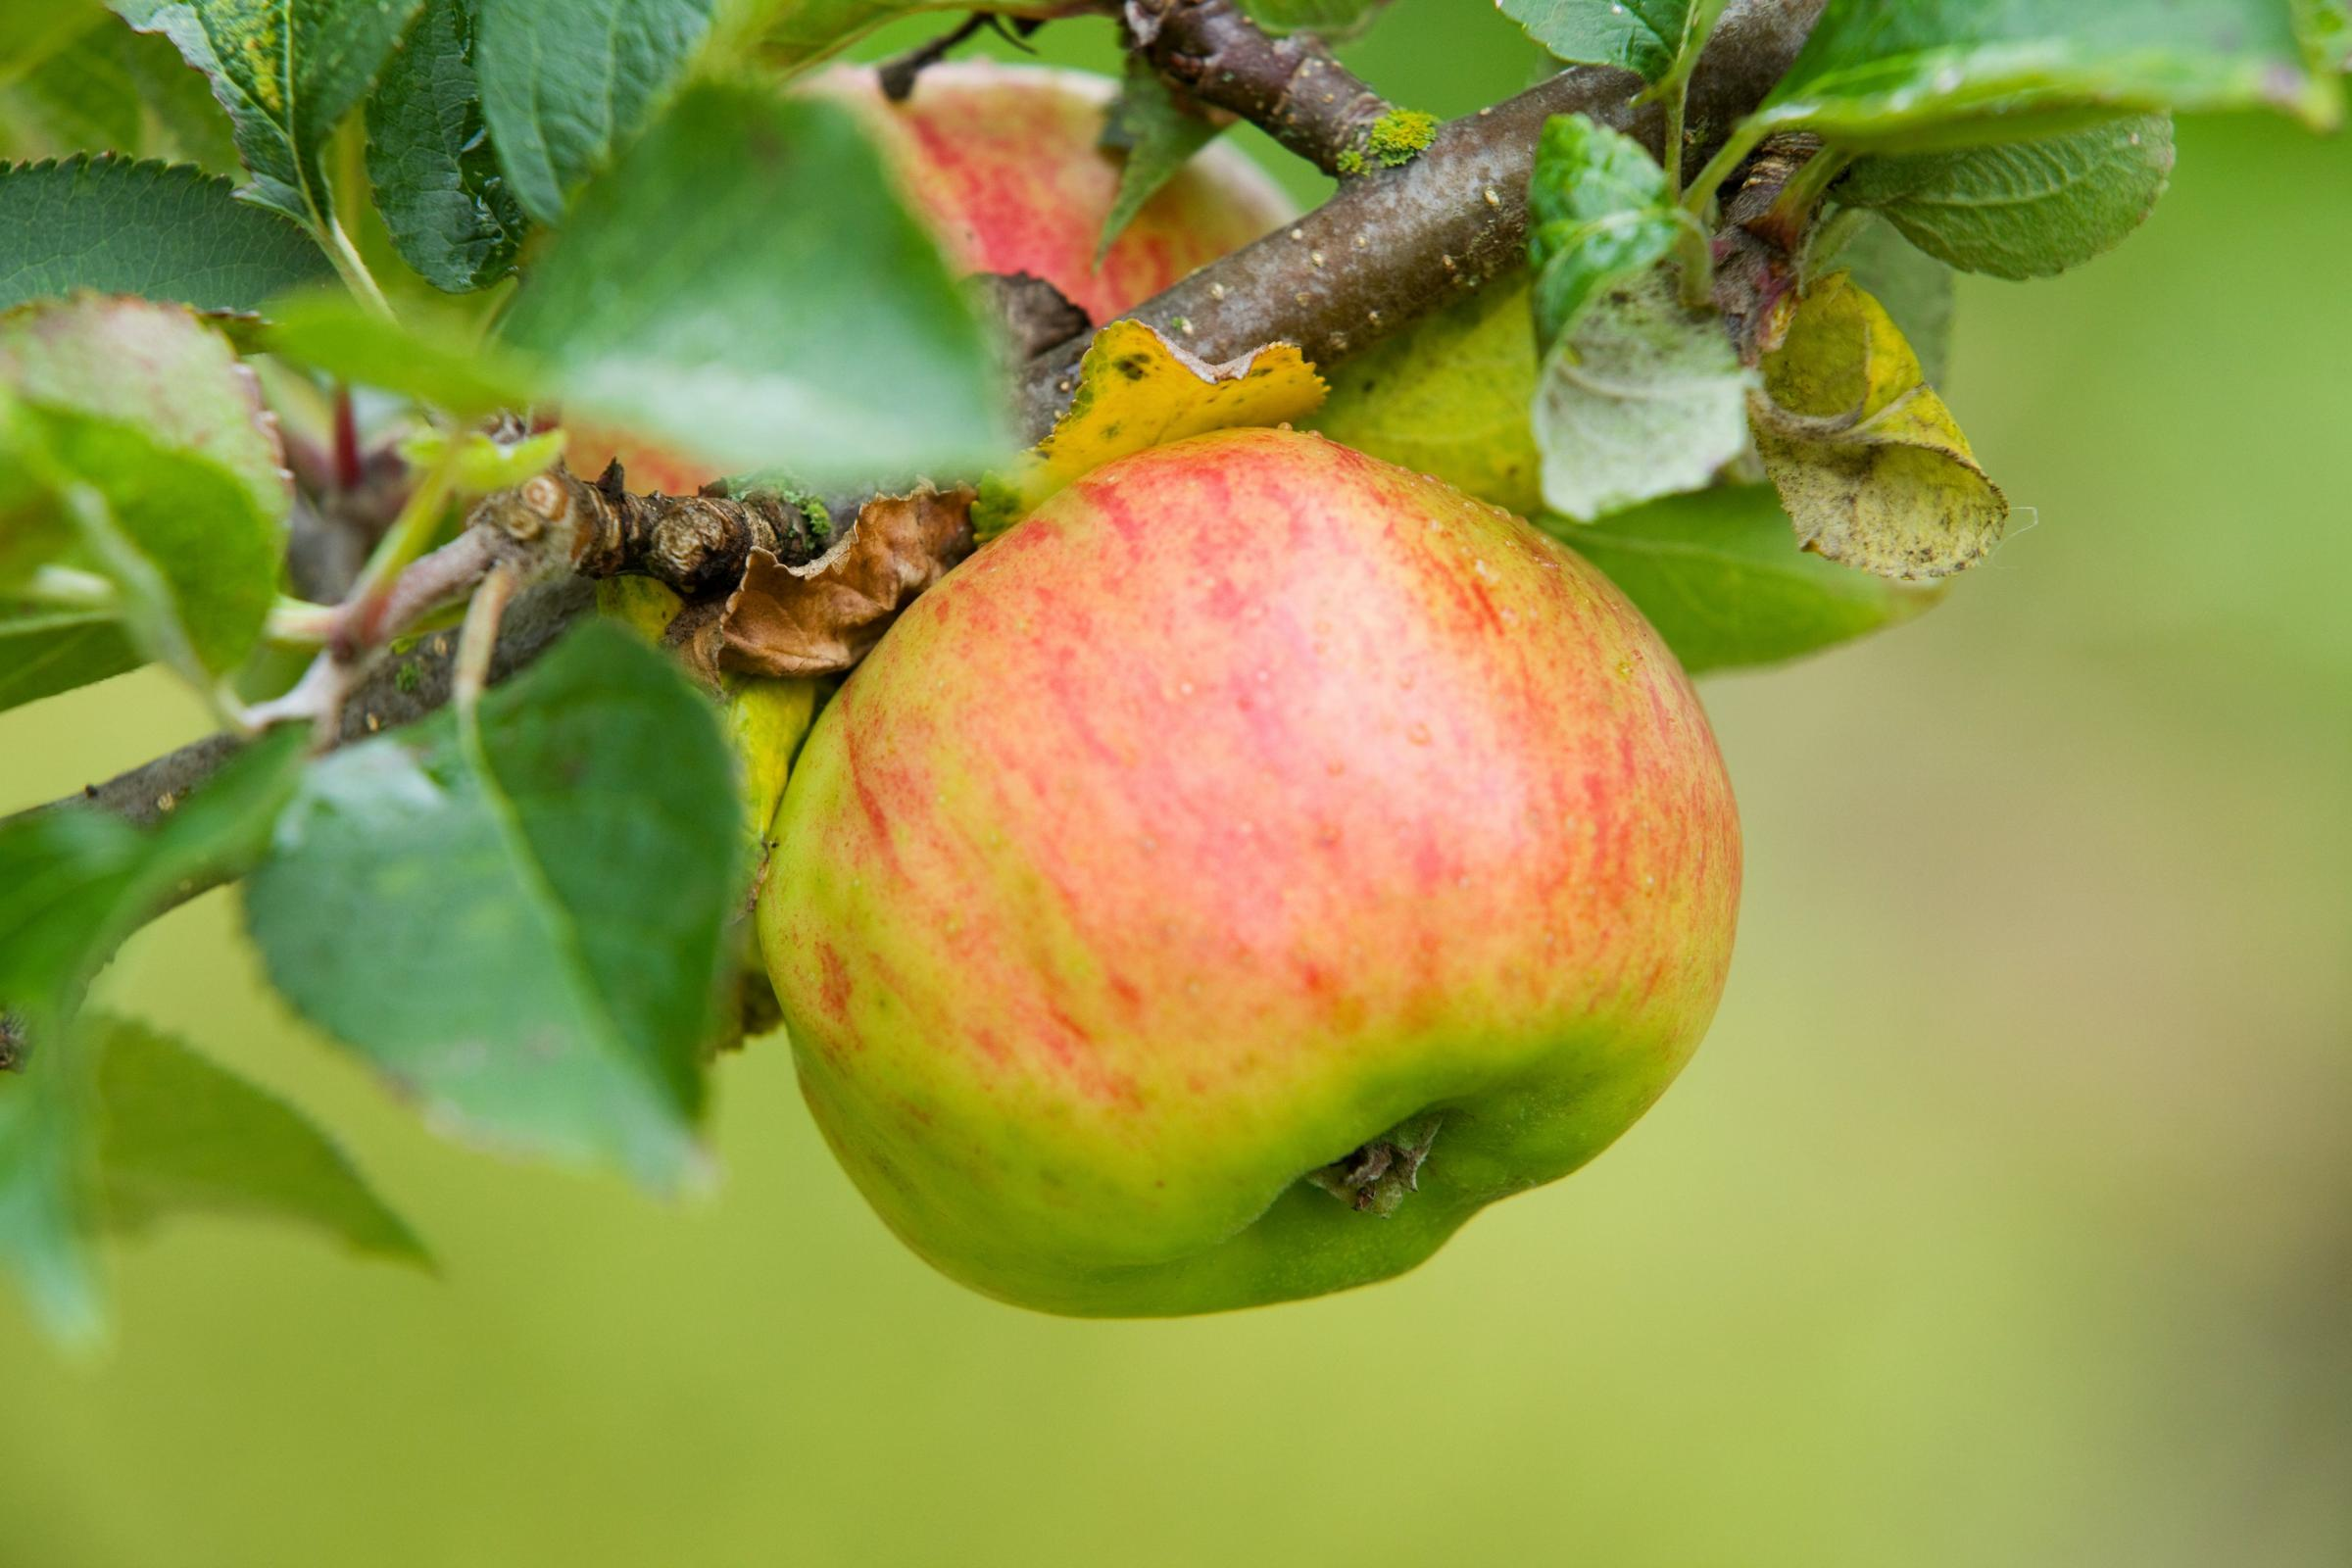 It's been a bumper year for apples, but how do you know when they're ripe for picking?